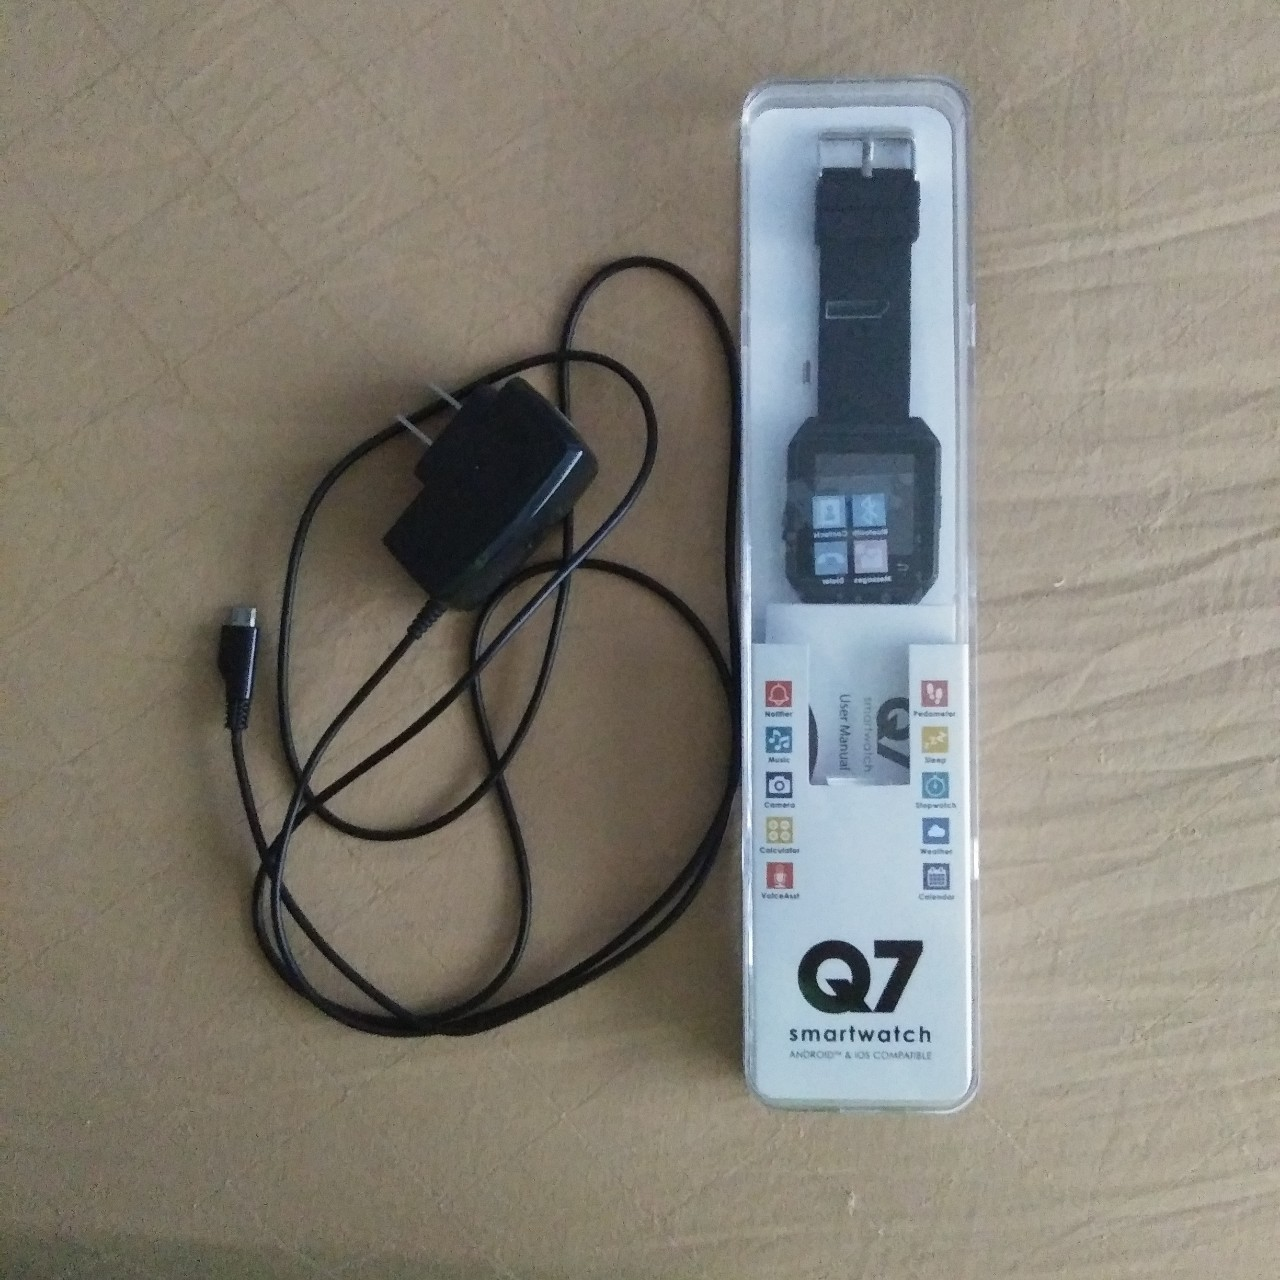 Q7 Smartwatch Android and iPhone Compatible The    - Depop